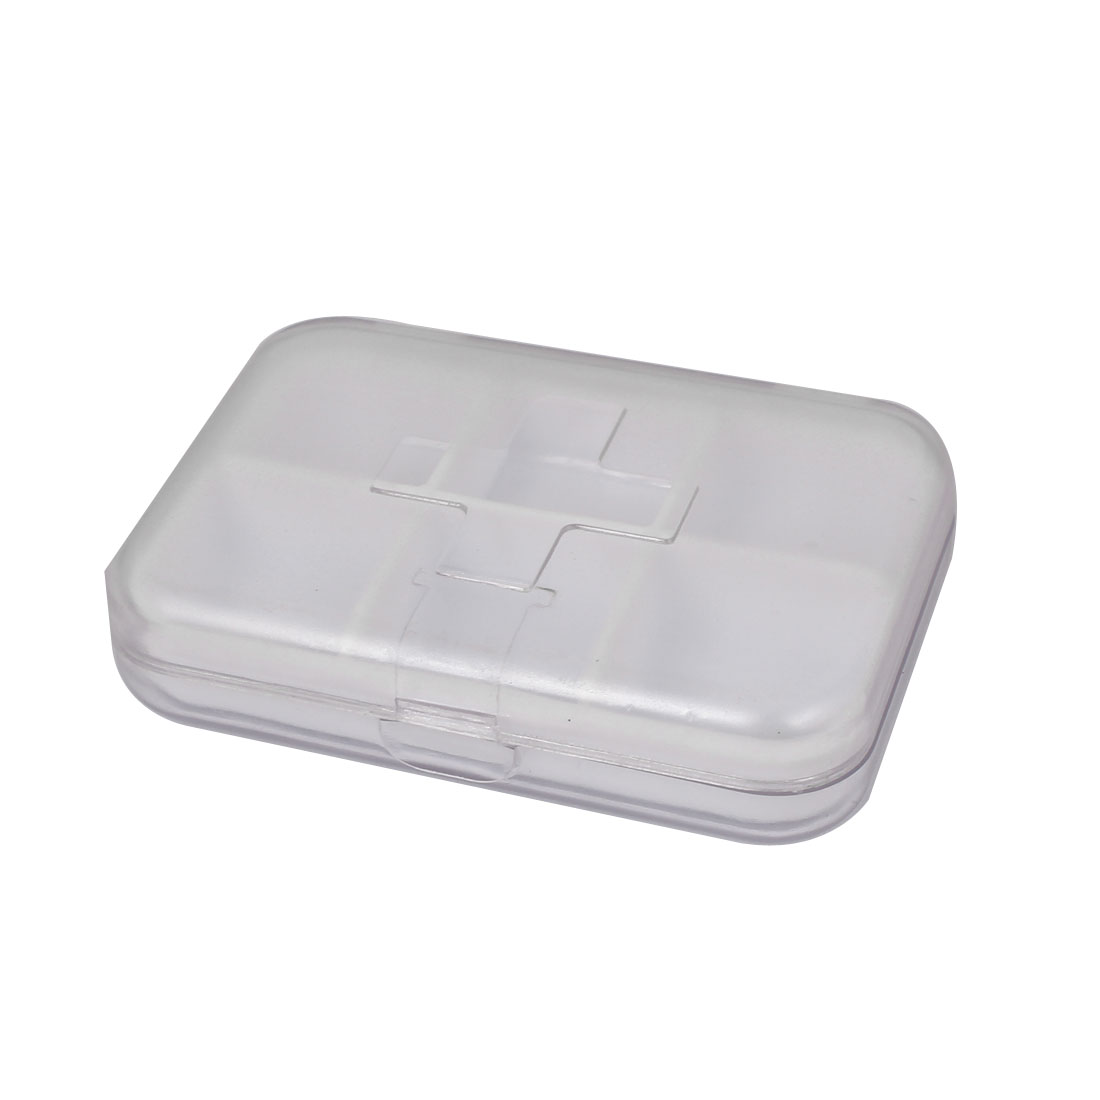 Medicine Dispenser Pill Organizer Holder Case Tablet Box Clear White